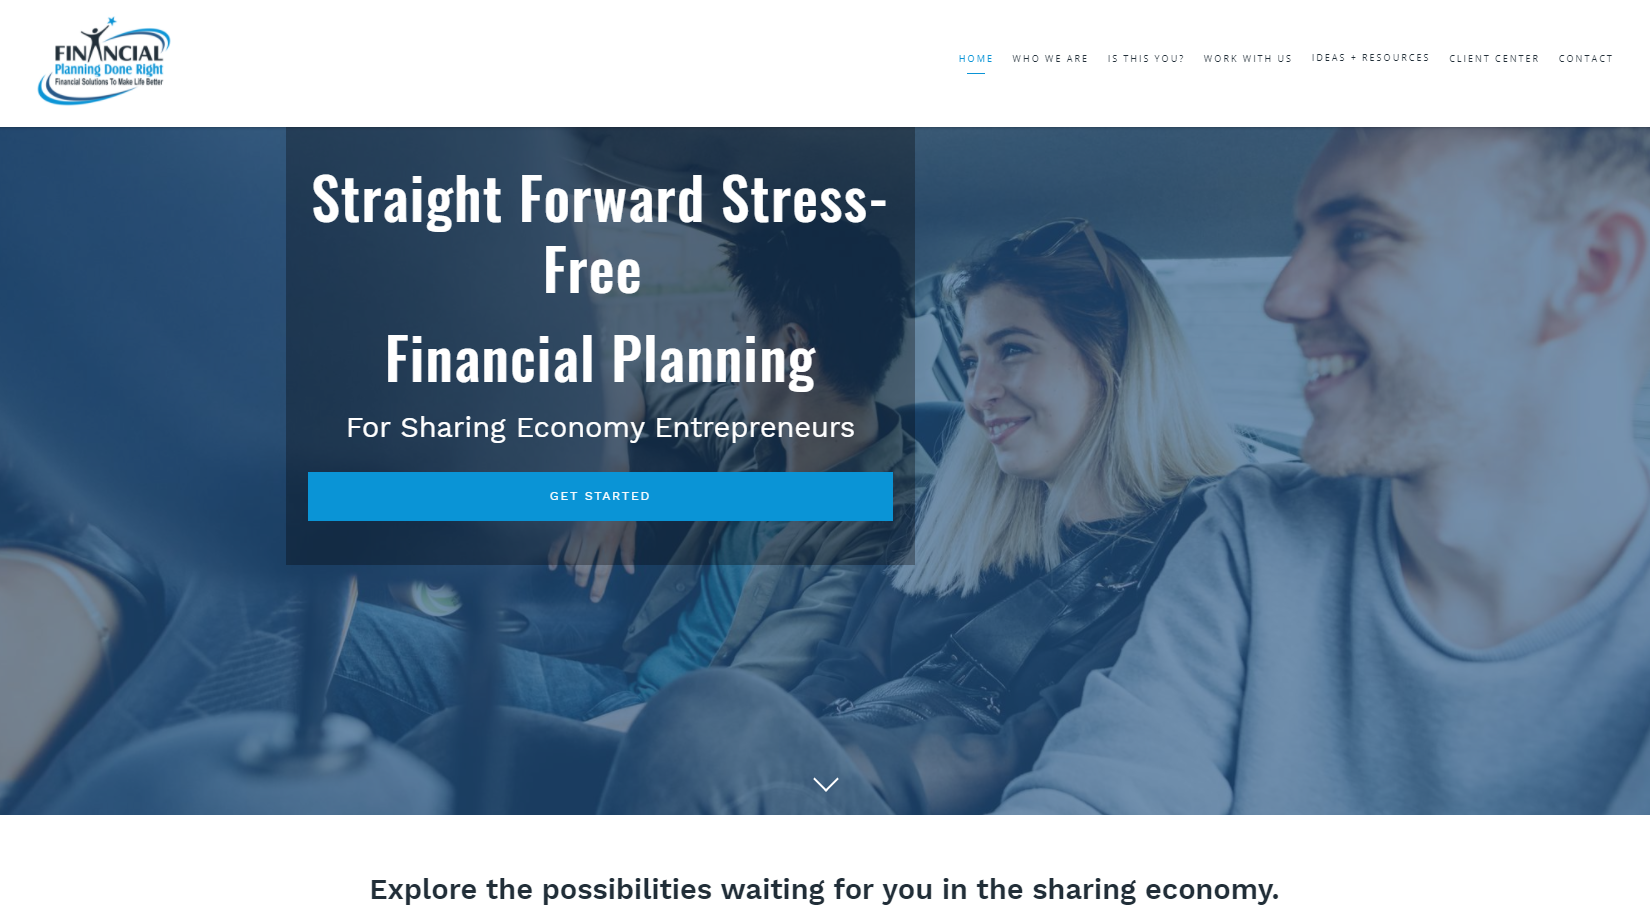 financial planning done right financial planning for sharing economy entrepreneurs